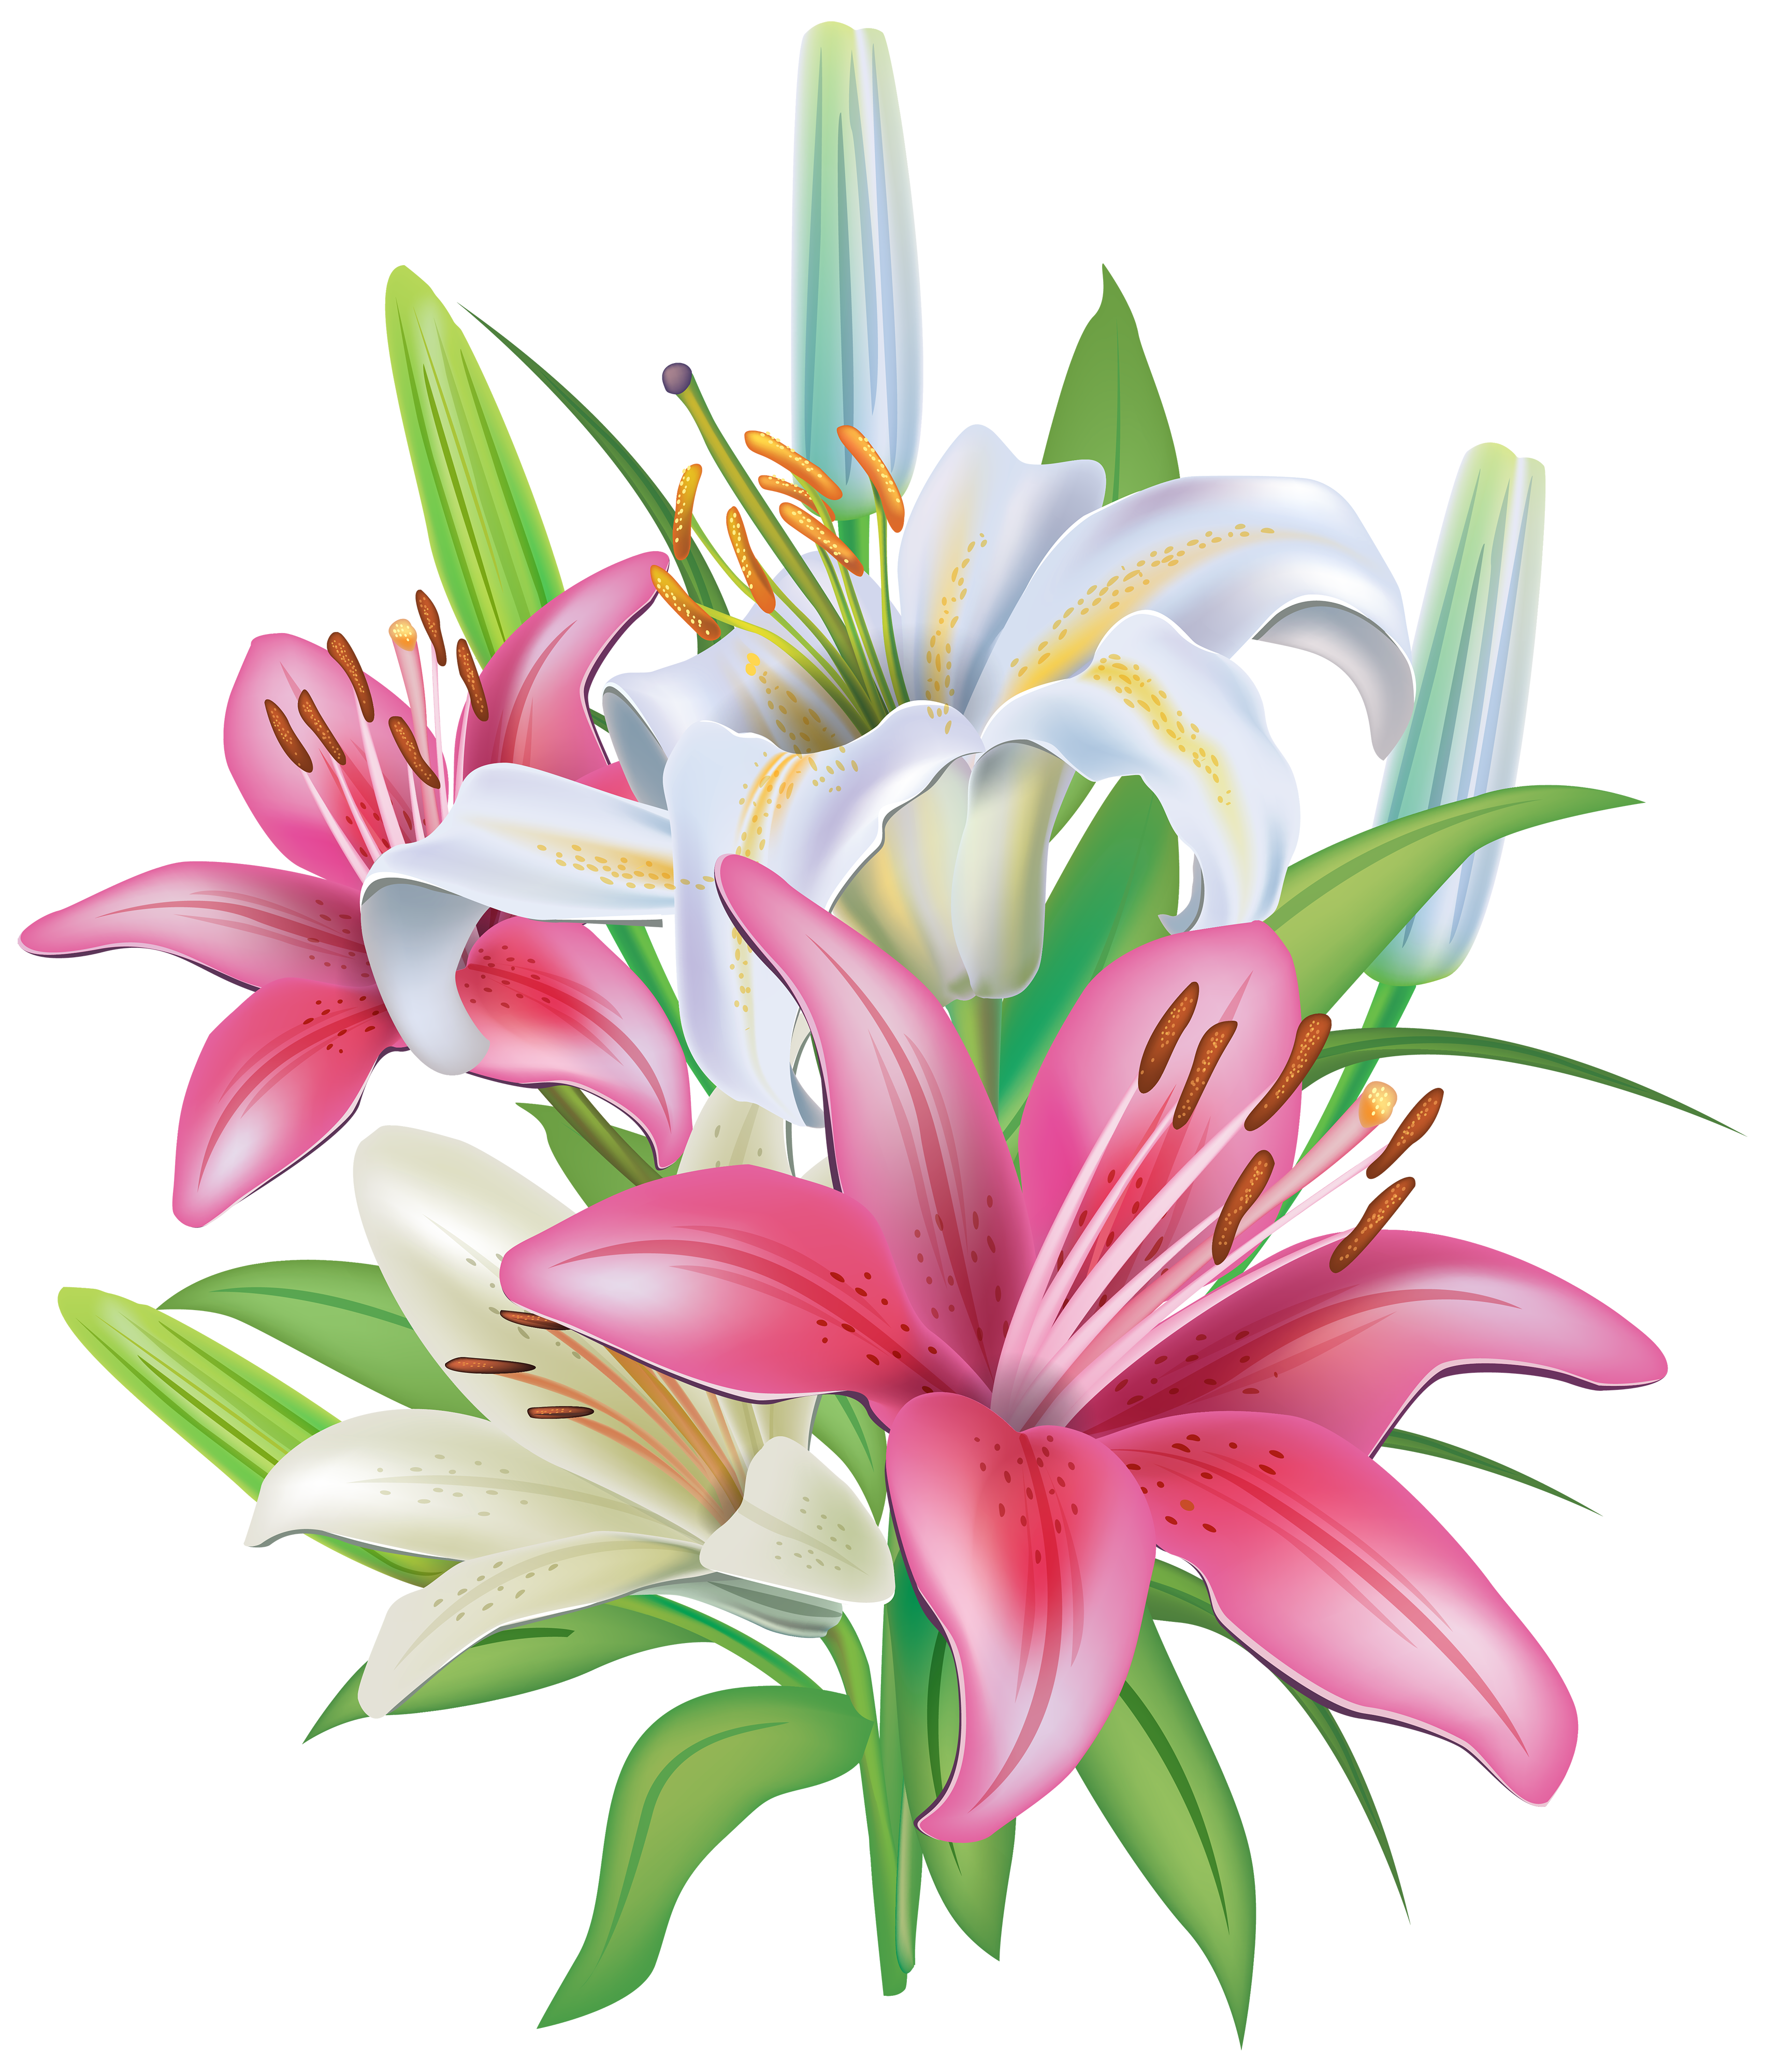 Pink lilies clipart #6